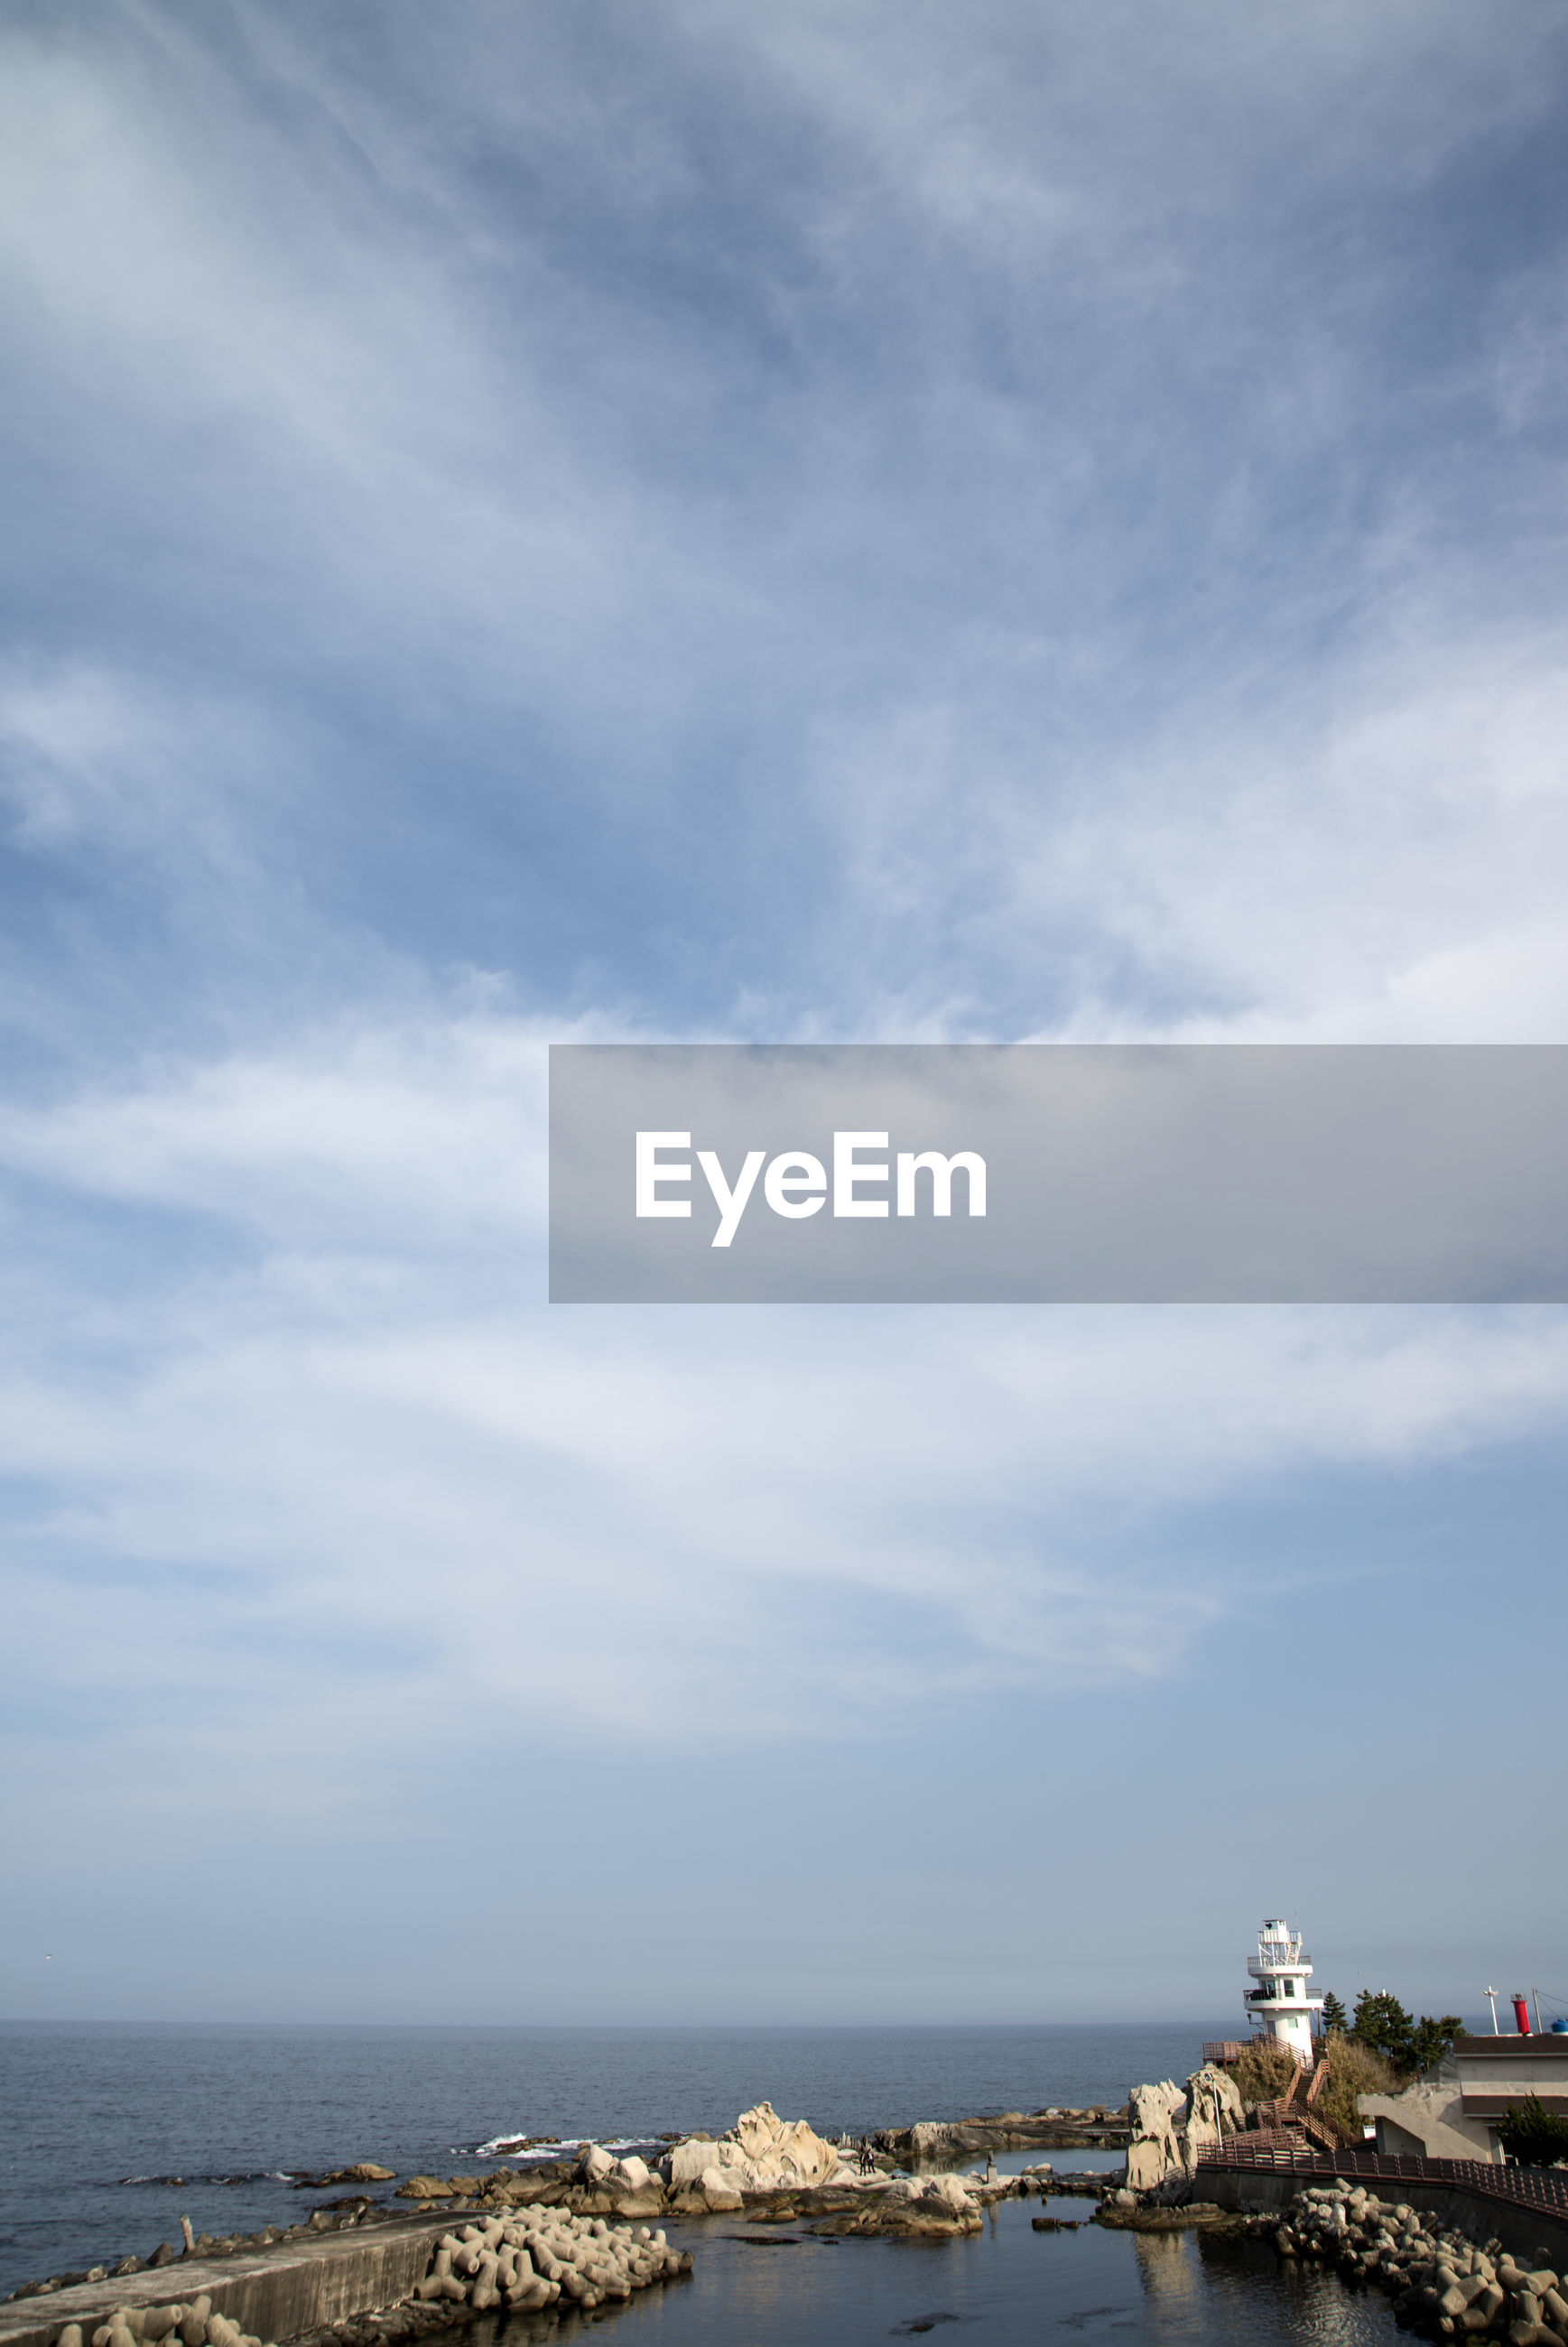 SCENIC VIEW OF SEA BY CITYSCAPE AGAINST SKY